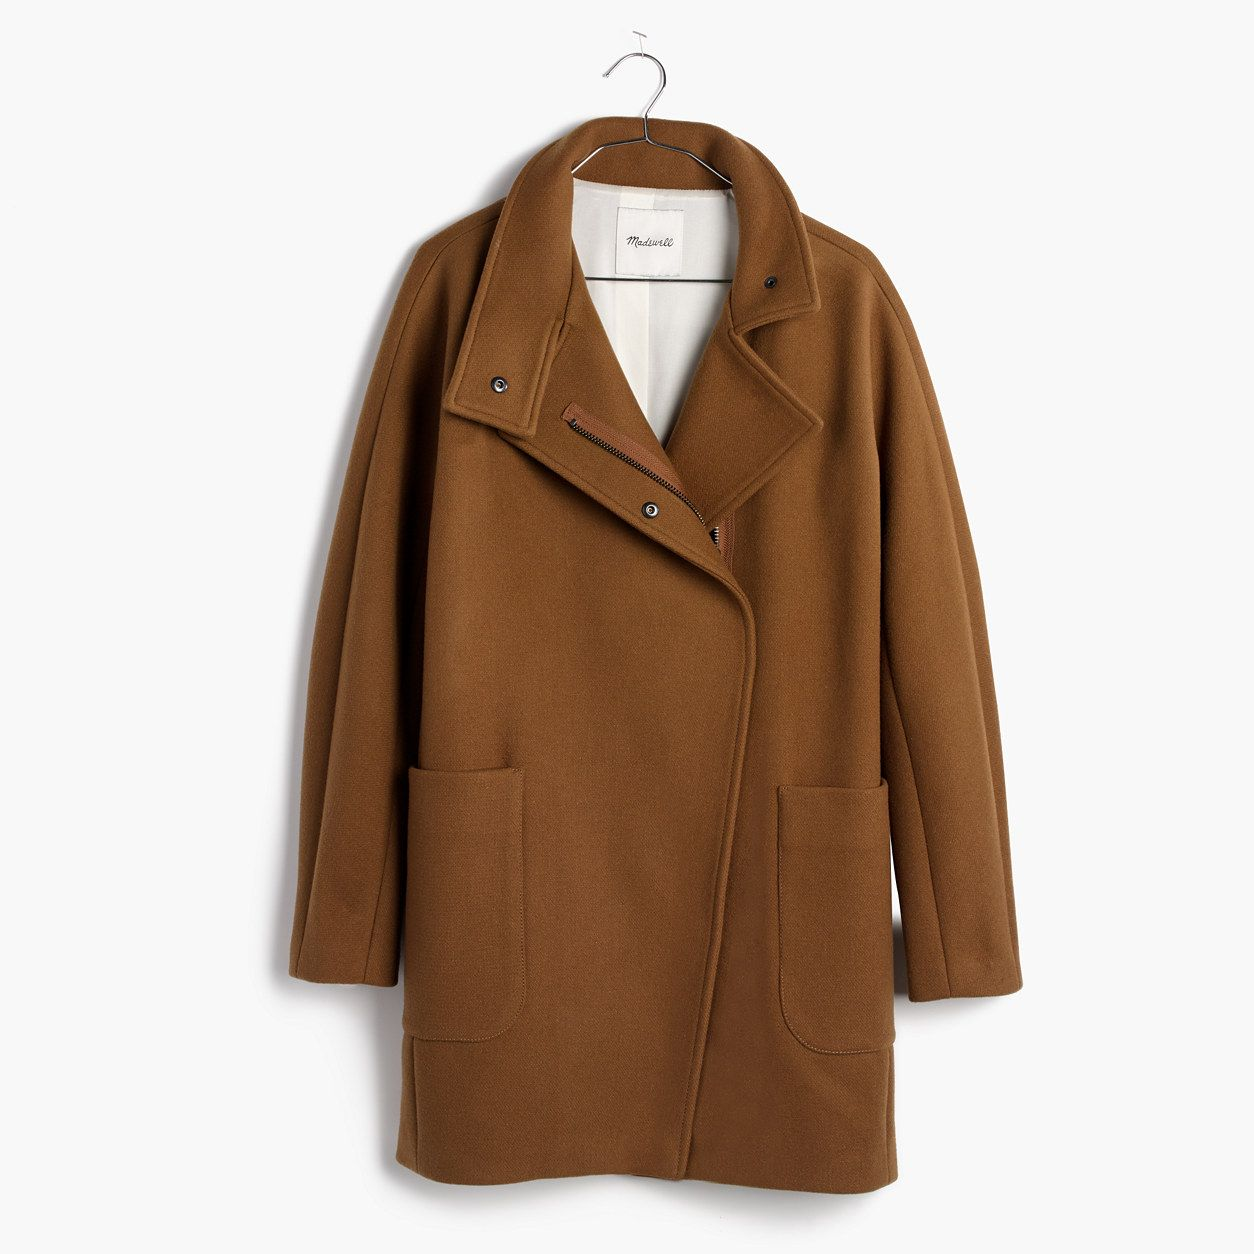 Madewell City Grid Coat In Burnished Cedar Madewell coat